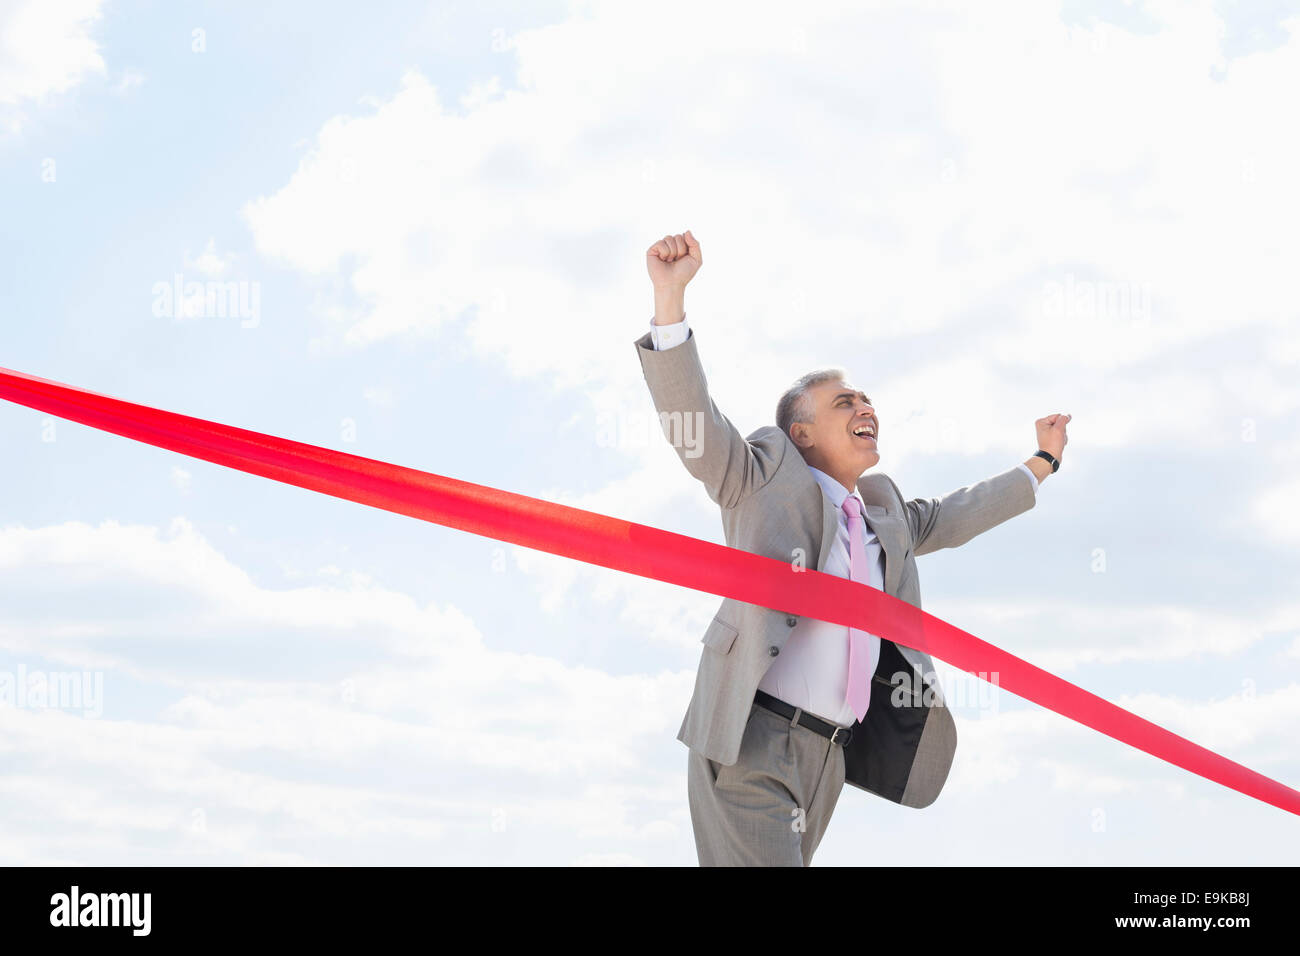 Cheerful businessman crossing finish line against sky - Stock Image